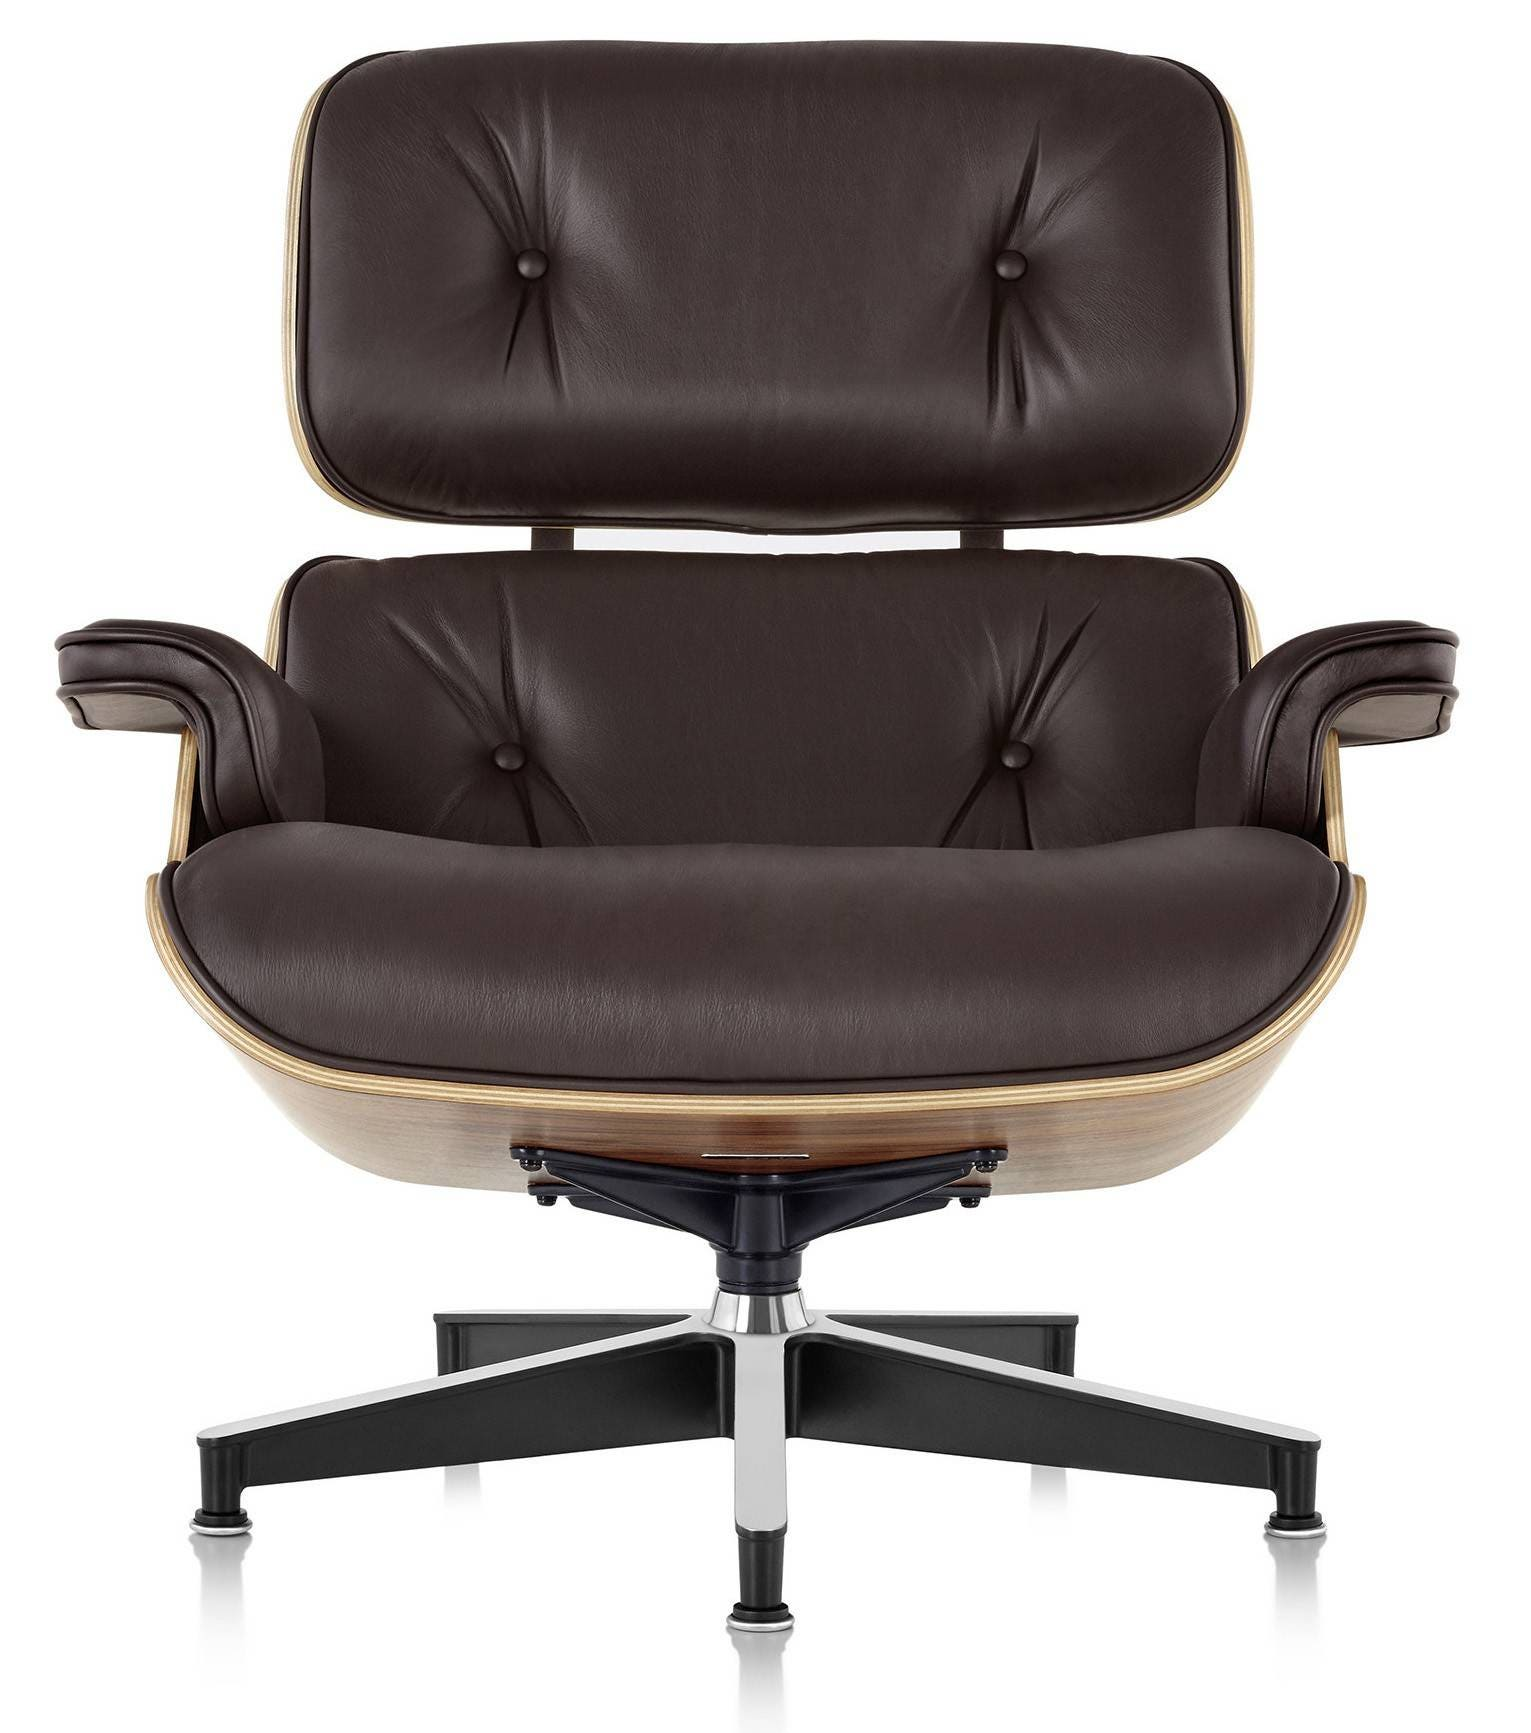 Herman miller eames lounge chair gr shop canada for Eames lounge chair replica erfahrungen